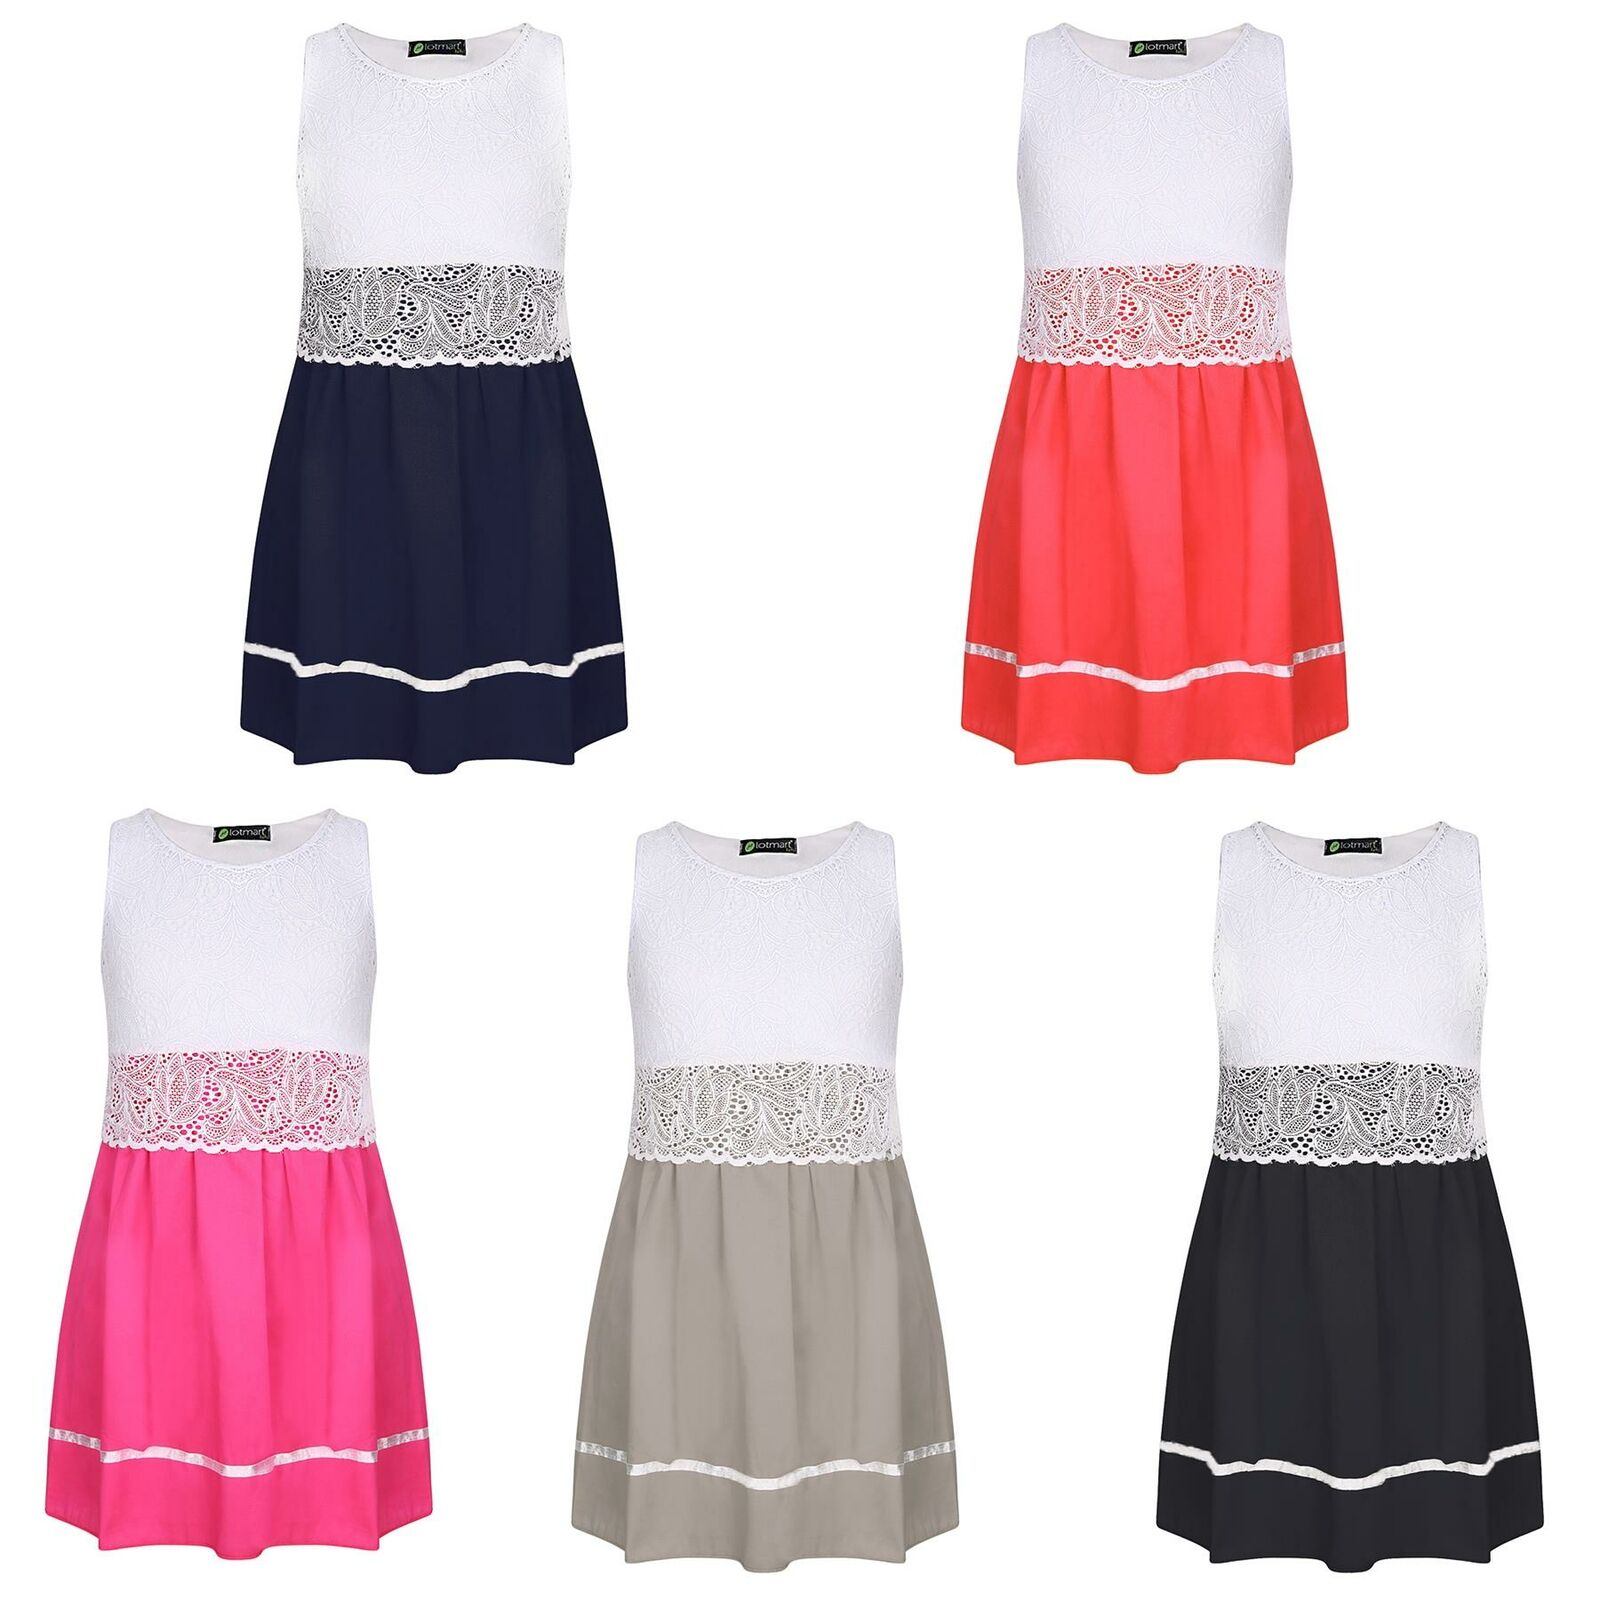 Girls Dress Sleeveless Lace Top Ribbon Skirt Detail Party Casual Size 3-14 Years